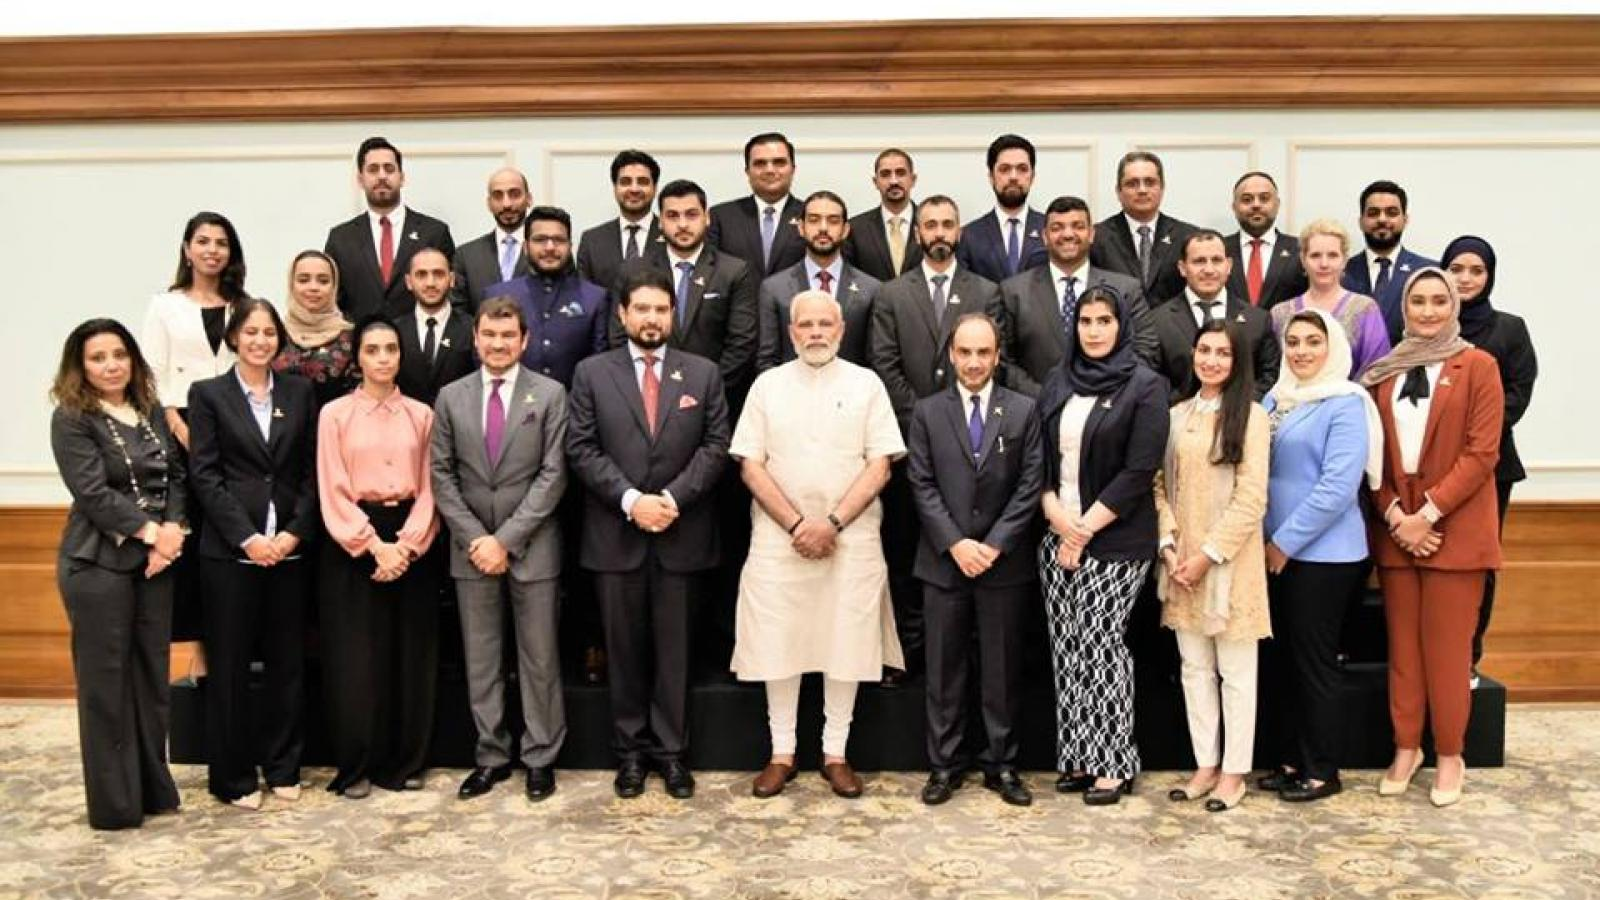 Omani Next Generation business leaders that meet with the Indian Prime Minister Narendra Modi.